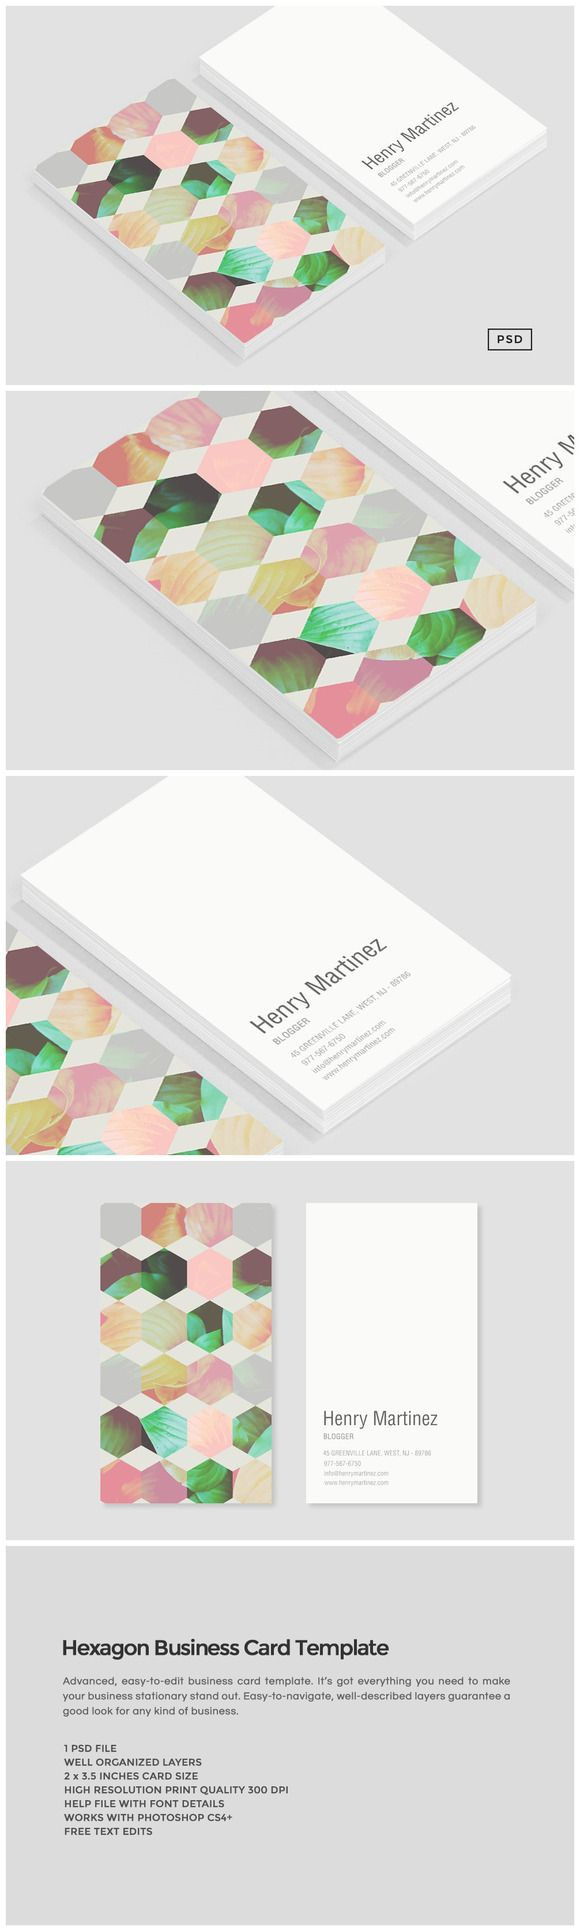 Pretty 15 Year Old Resume Template Tiny 16 Oz Tumbler Template Shaped 1st Job Resume Examples 2 Inch Hexagon Template Youthful 2 Page Resume Format Doc Red2 Page Resume Sample Format 25  Best Ideas About Hexagon Pattern On Pinterest | Color Patterns ..